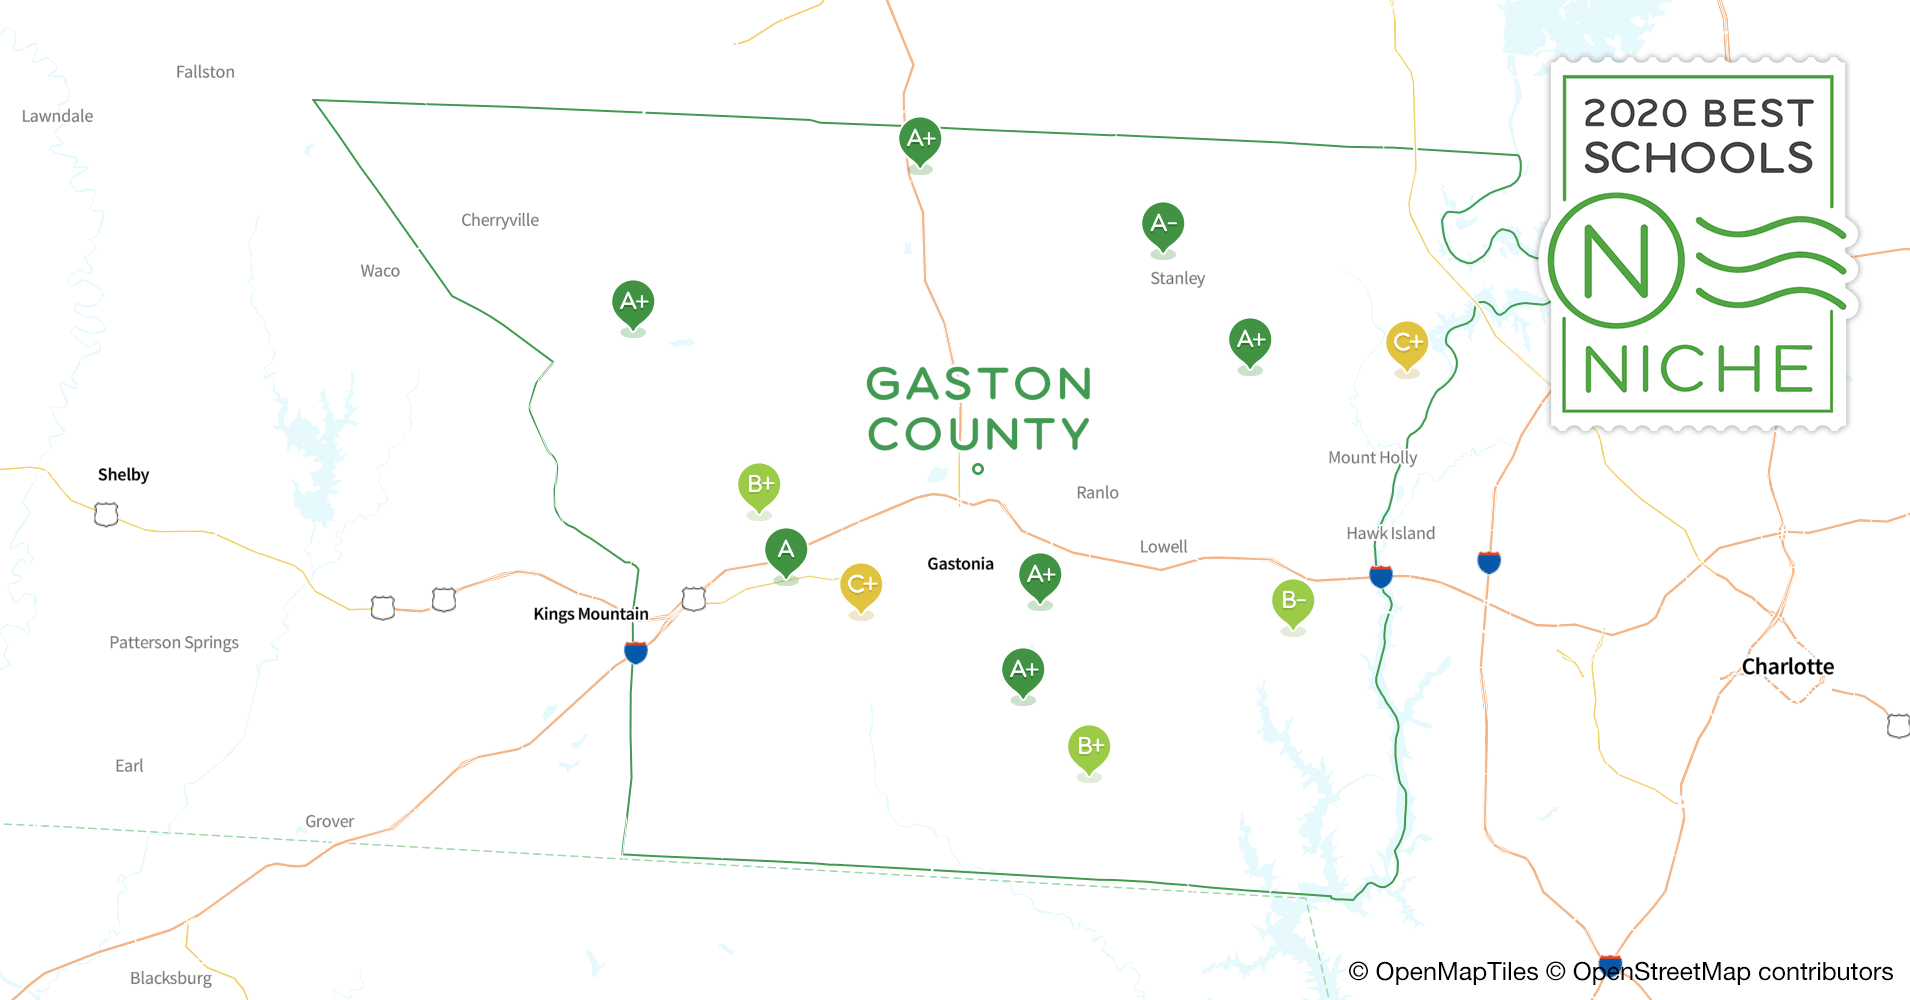 2020 Best Public High s in Gaston County, NC - Niche Gaston County Nc Map on mecklenburg nc map, gastonia nc map, ranlo nc map, north carolina nc map, mountain view nc map, albemarle nc map, north carolina river basin map, pickens county sc map, mooresville nc map, yadkin river nc map, mountain island lake nc map, wadesboro nc map, lake gaston map, gastonia north carolina map, hidden valley nc map, united states nc map, charlotte nc city limits map, gastonia city map, belmont north carolina map, southwest charlotte nc map,